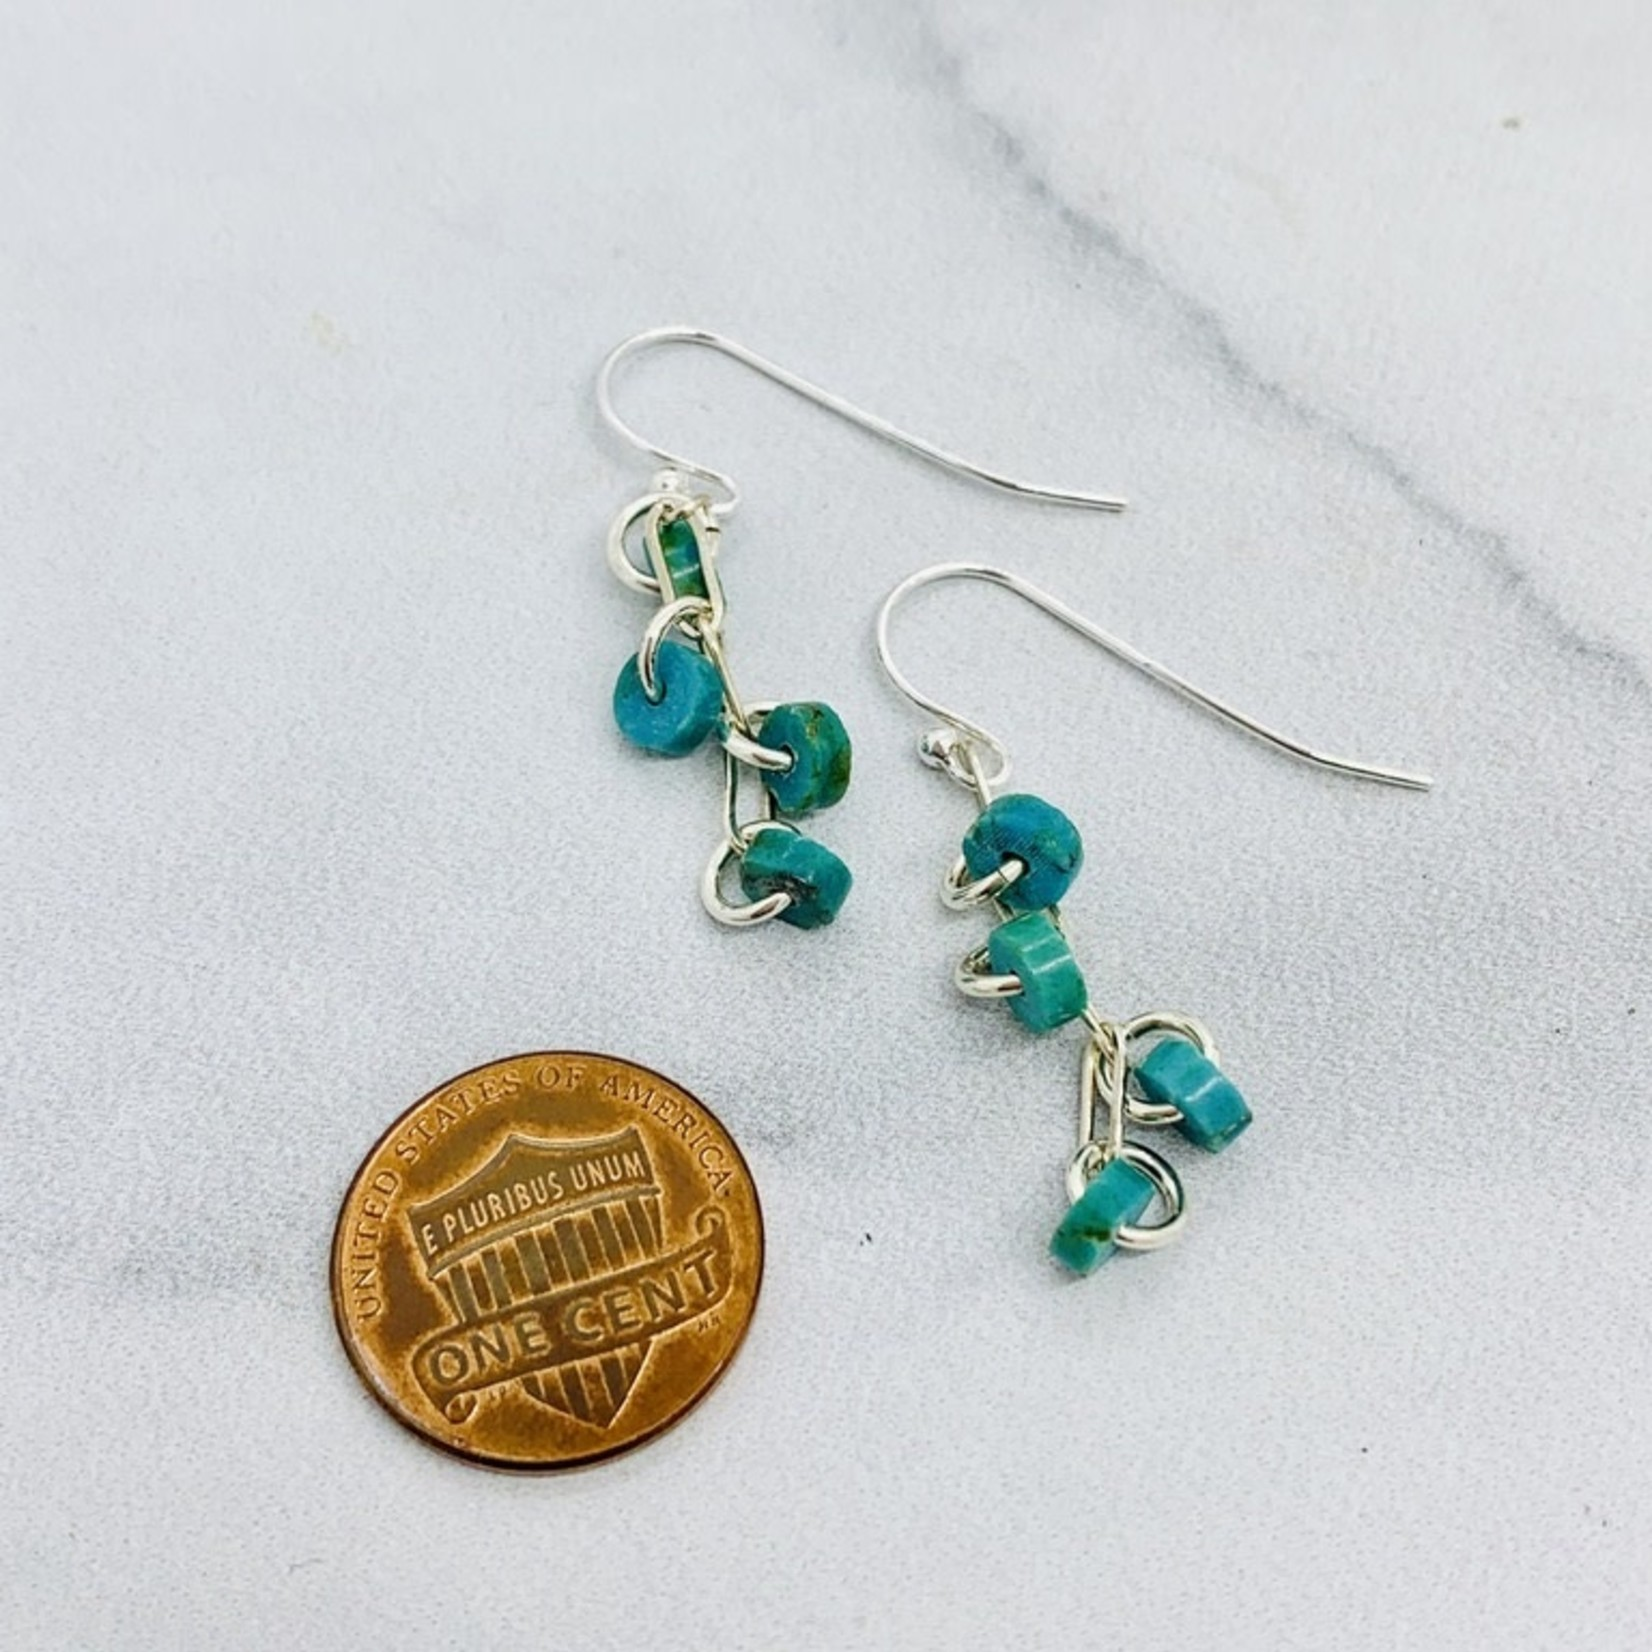 Handmade earrings with 4 turquoise discs on paperclip chain